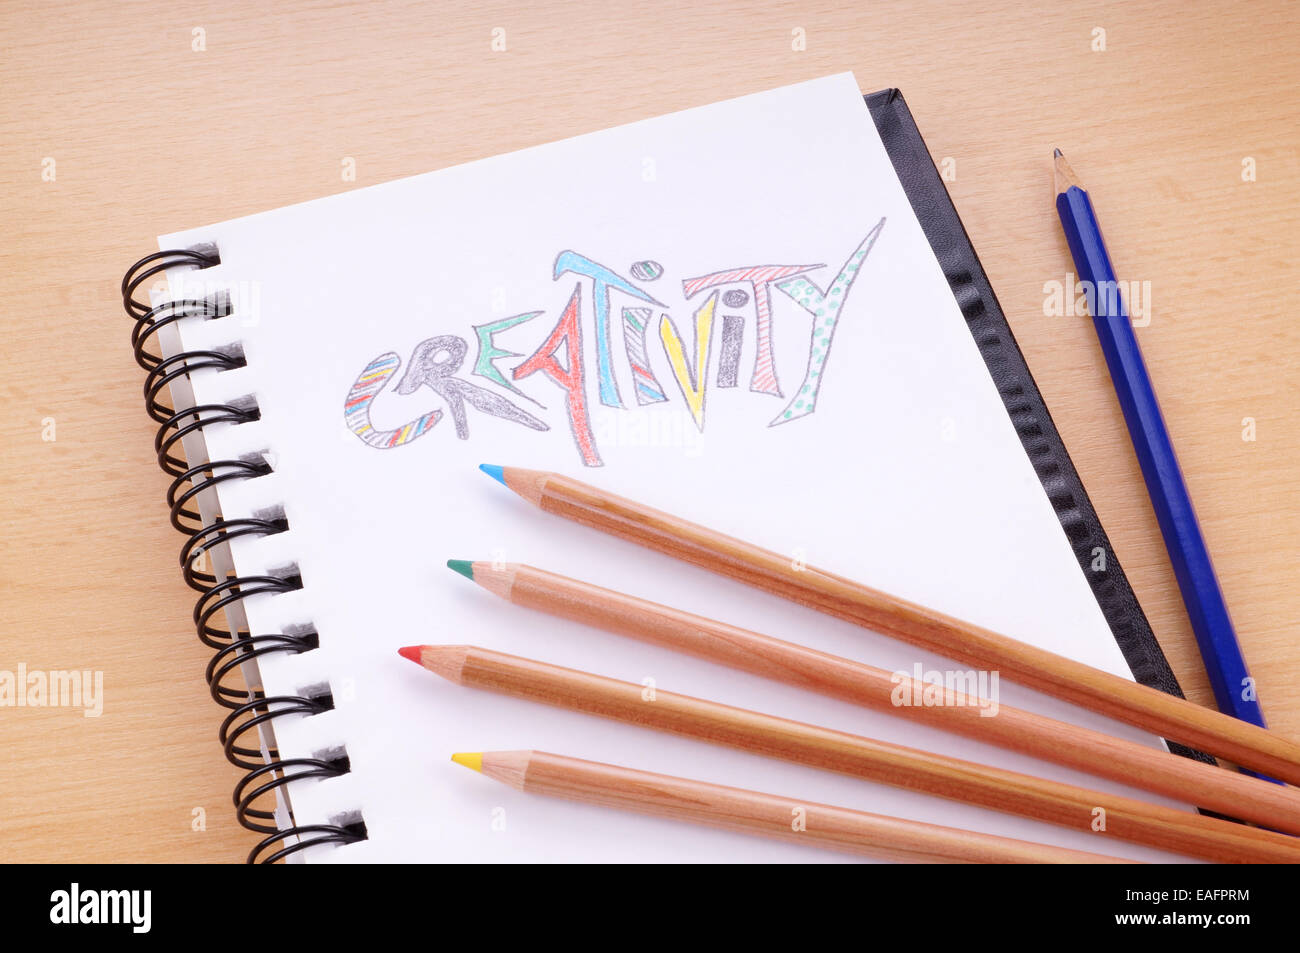 creativity concept - Stock Image